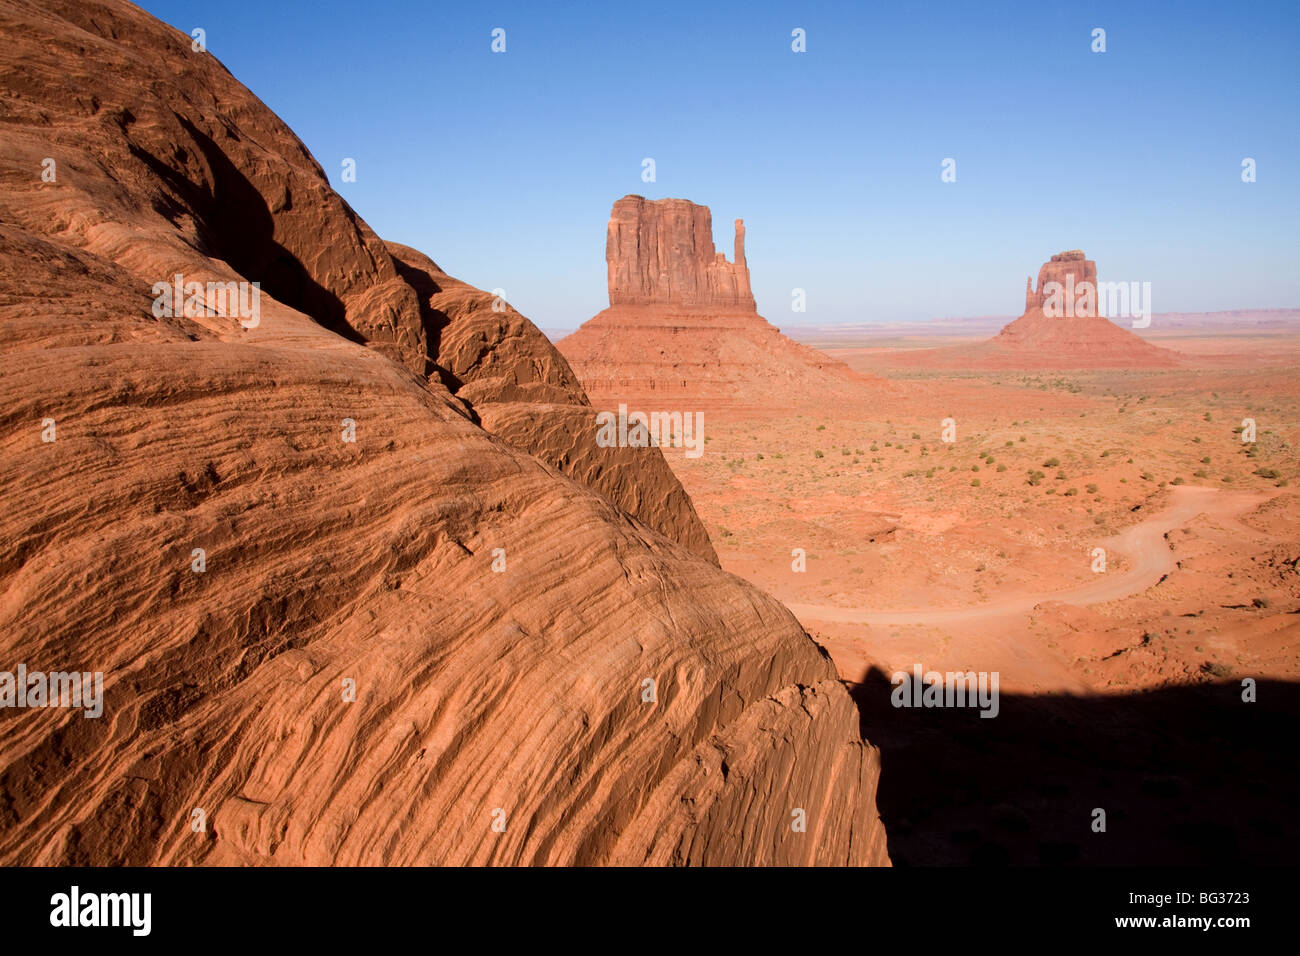 View of the West and East Butte in Monument Valley, Utah - Stock Image